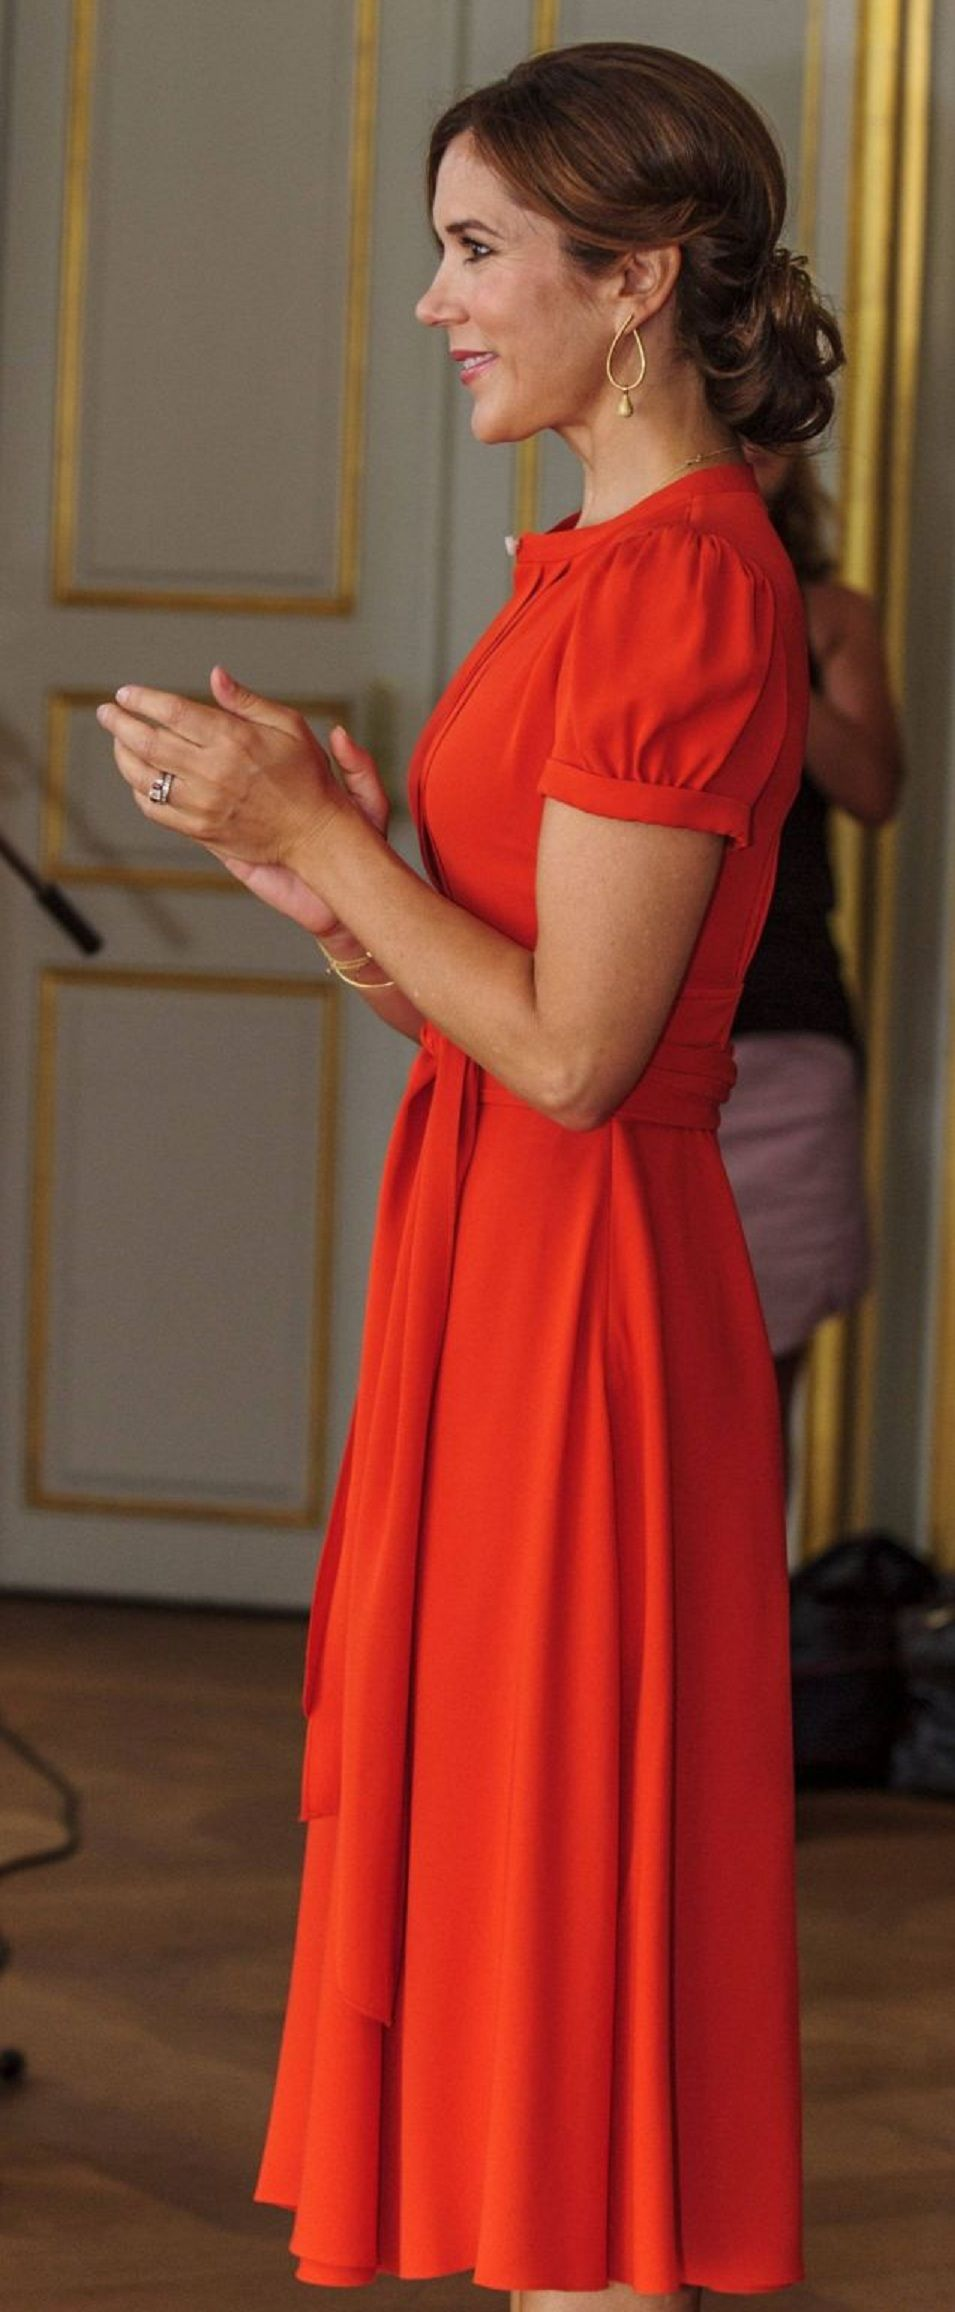 August 2012 - Crown Princess Mary - dress by Marc Jacobs